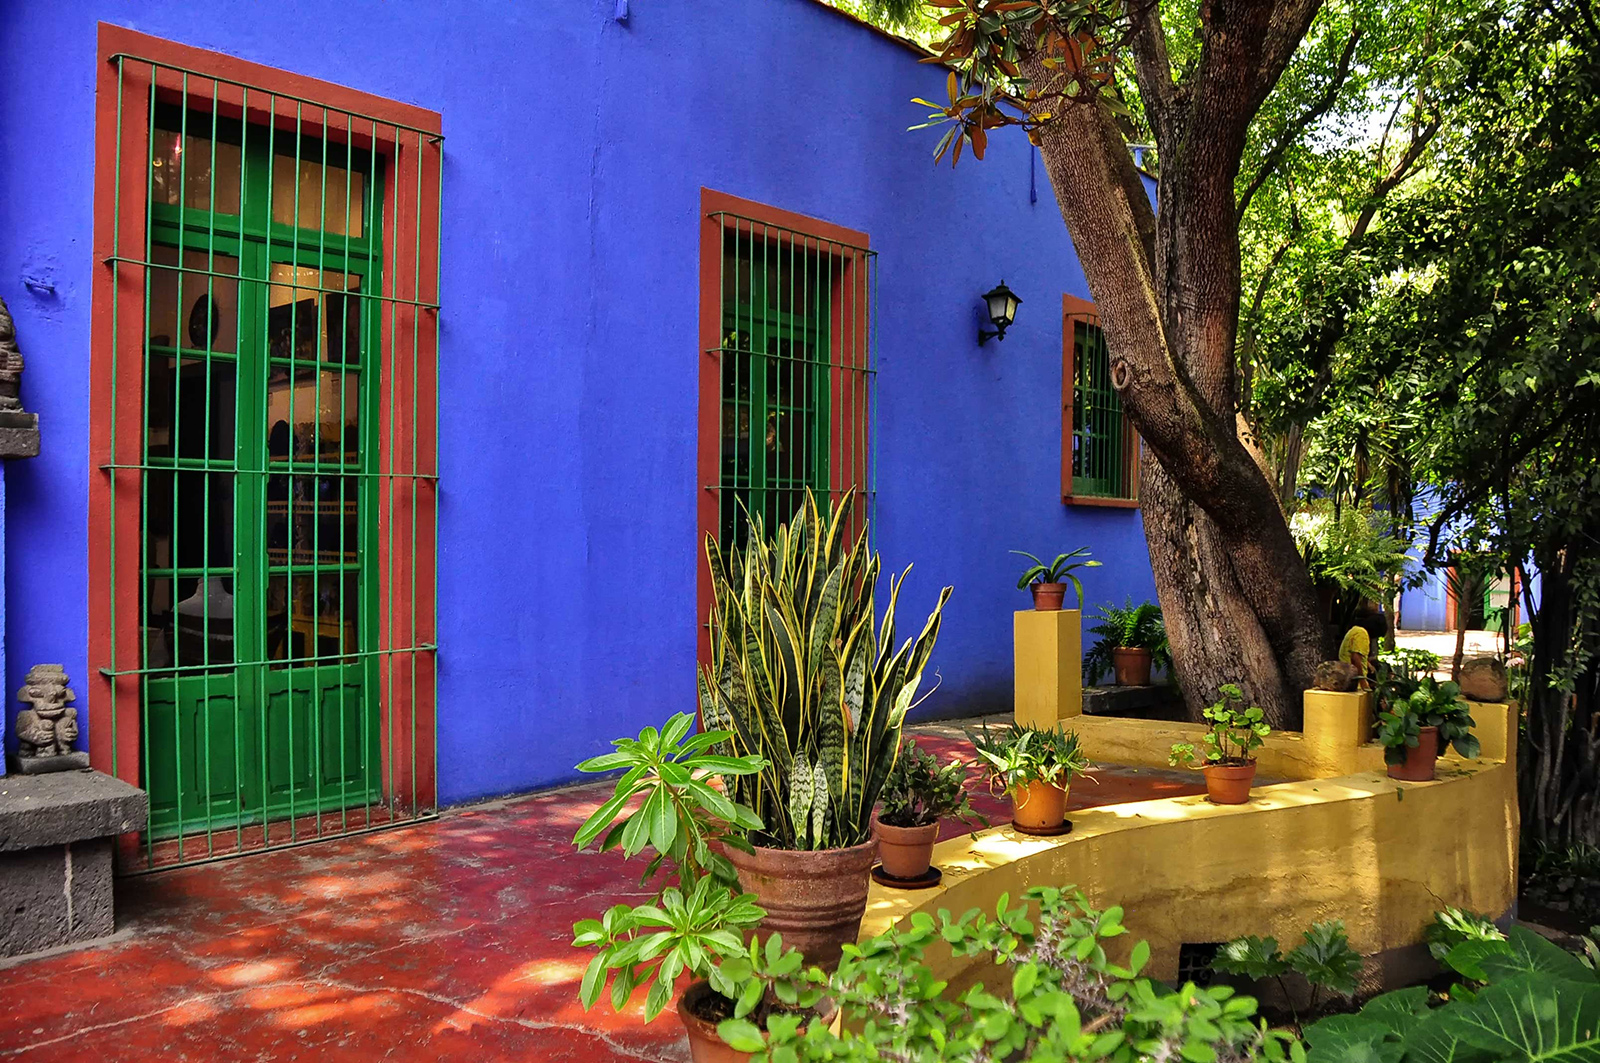 Casa Azul in Mexico City